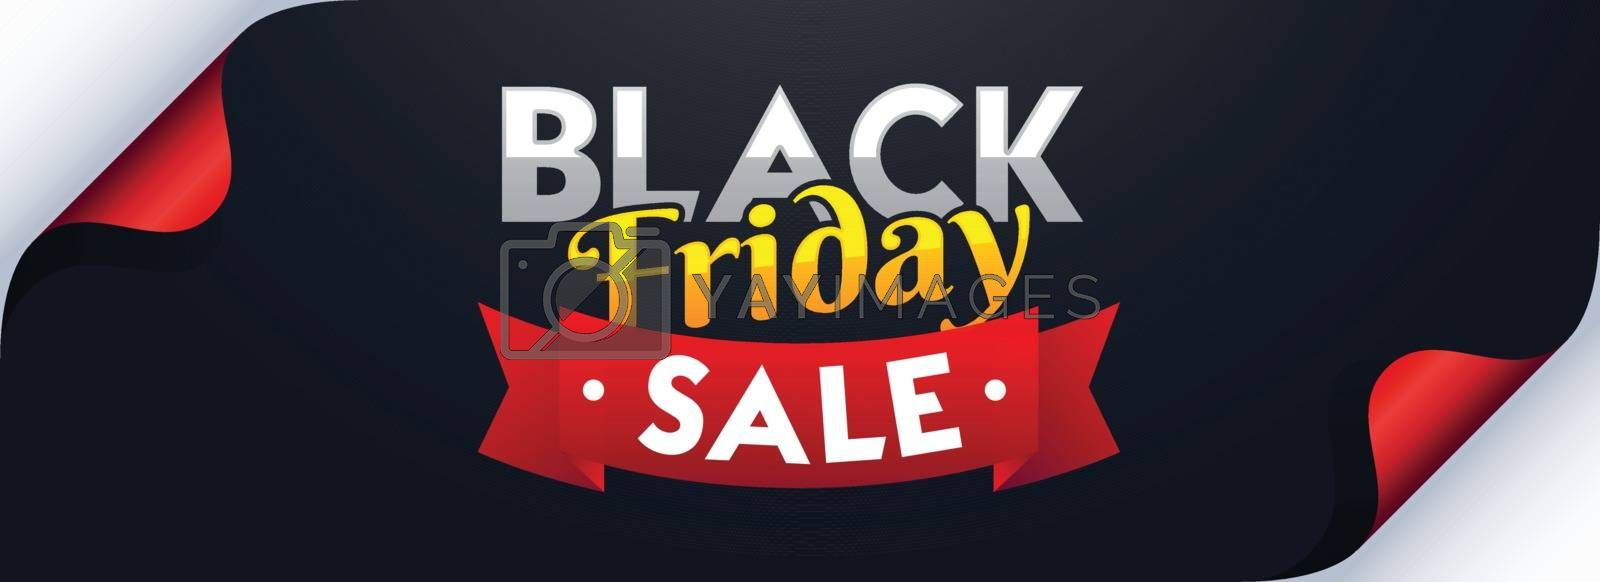 Curl paper style website header or banner design for Black Friday Sale.